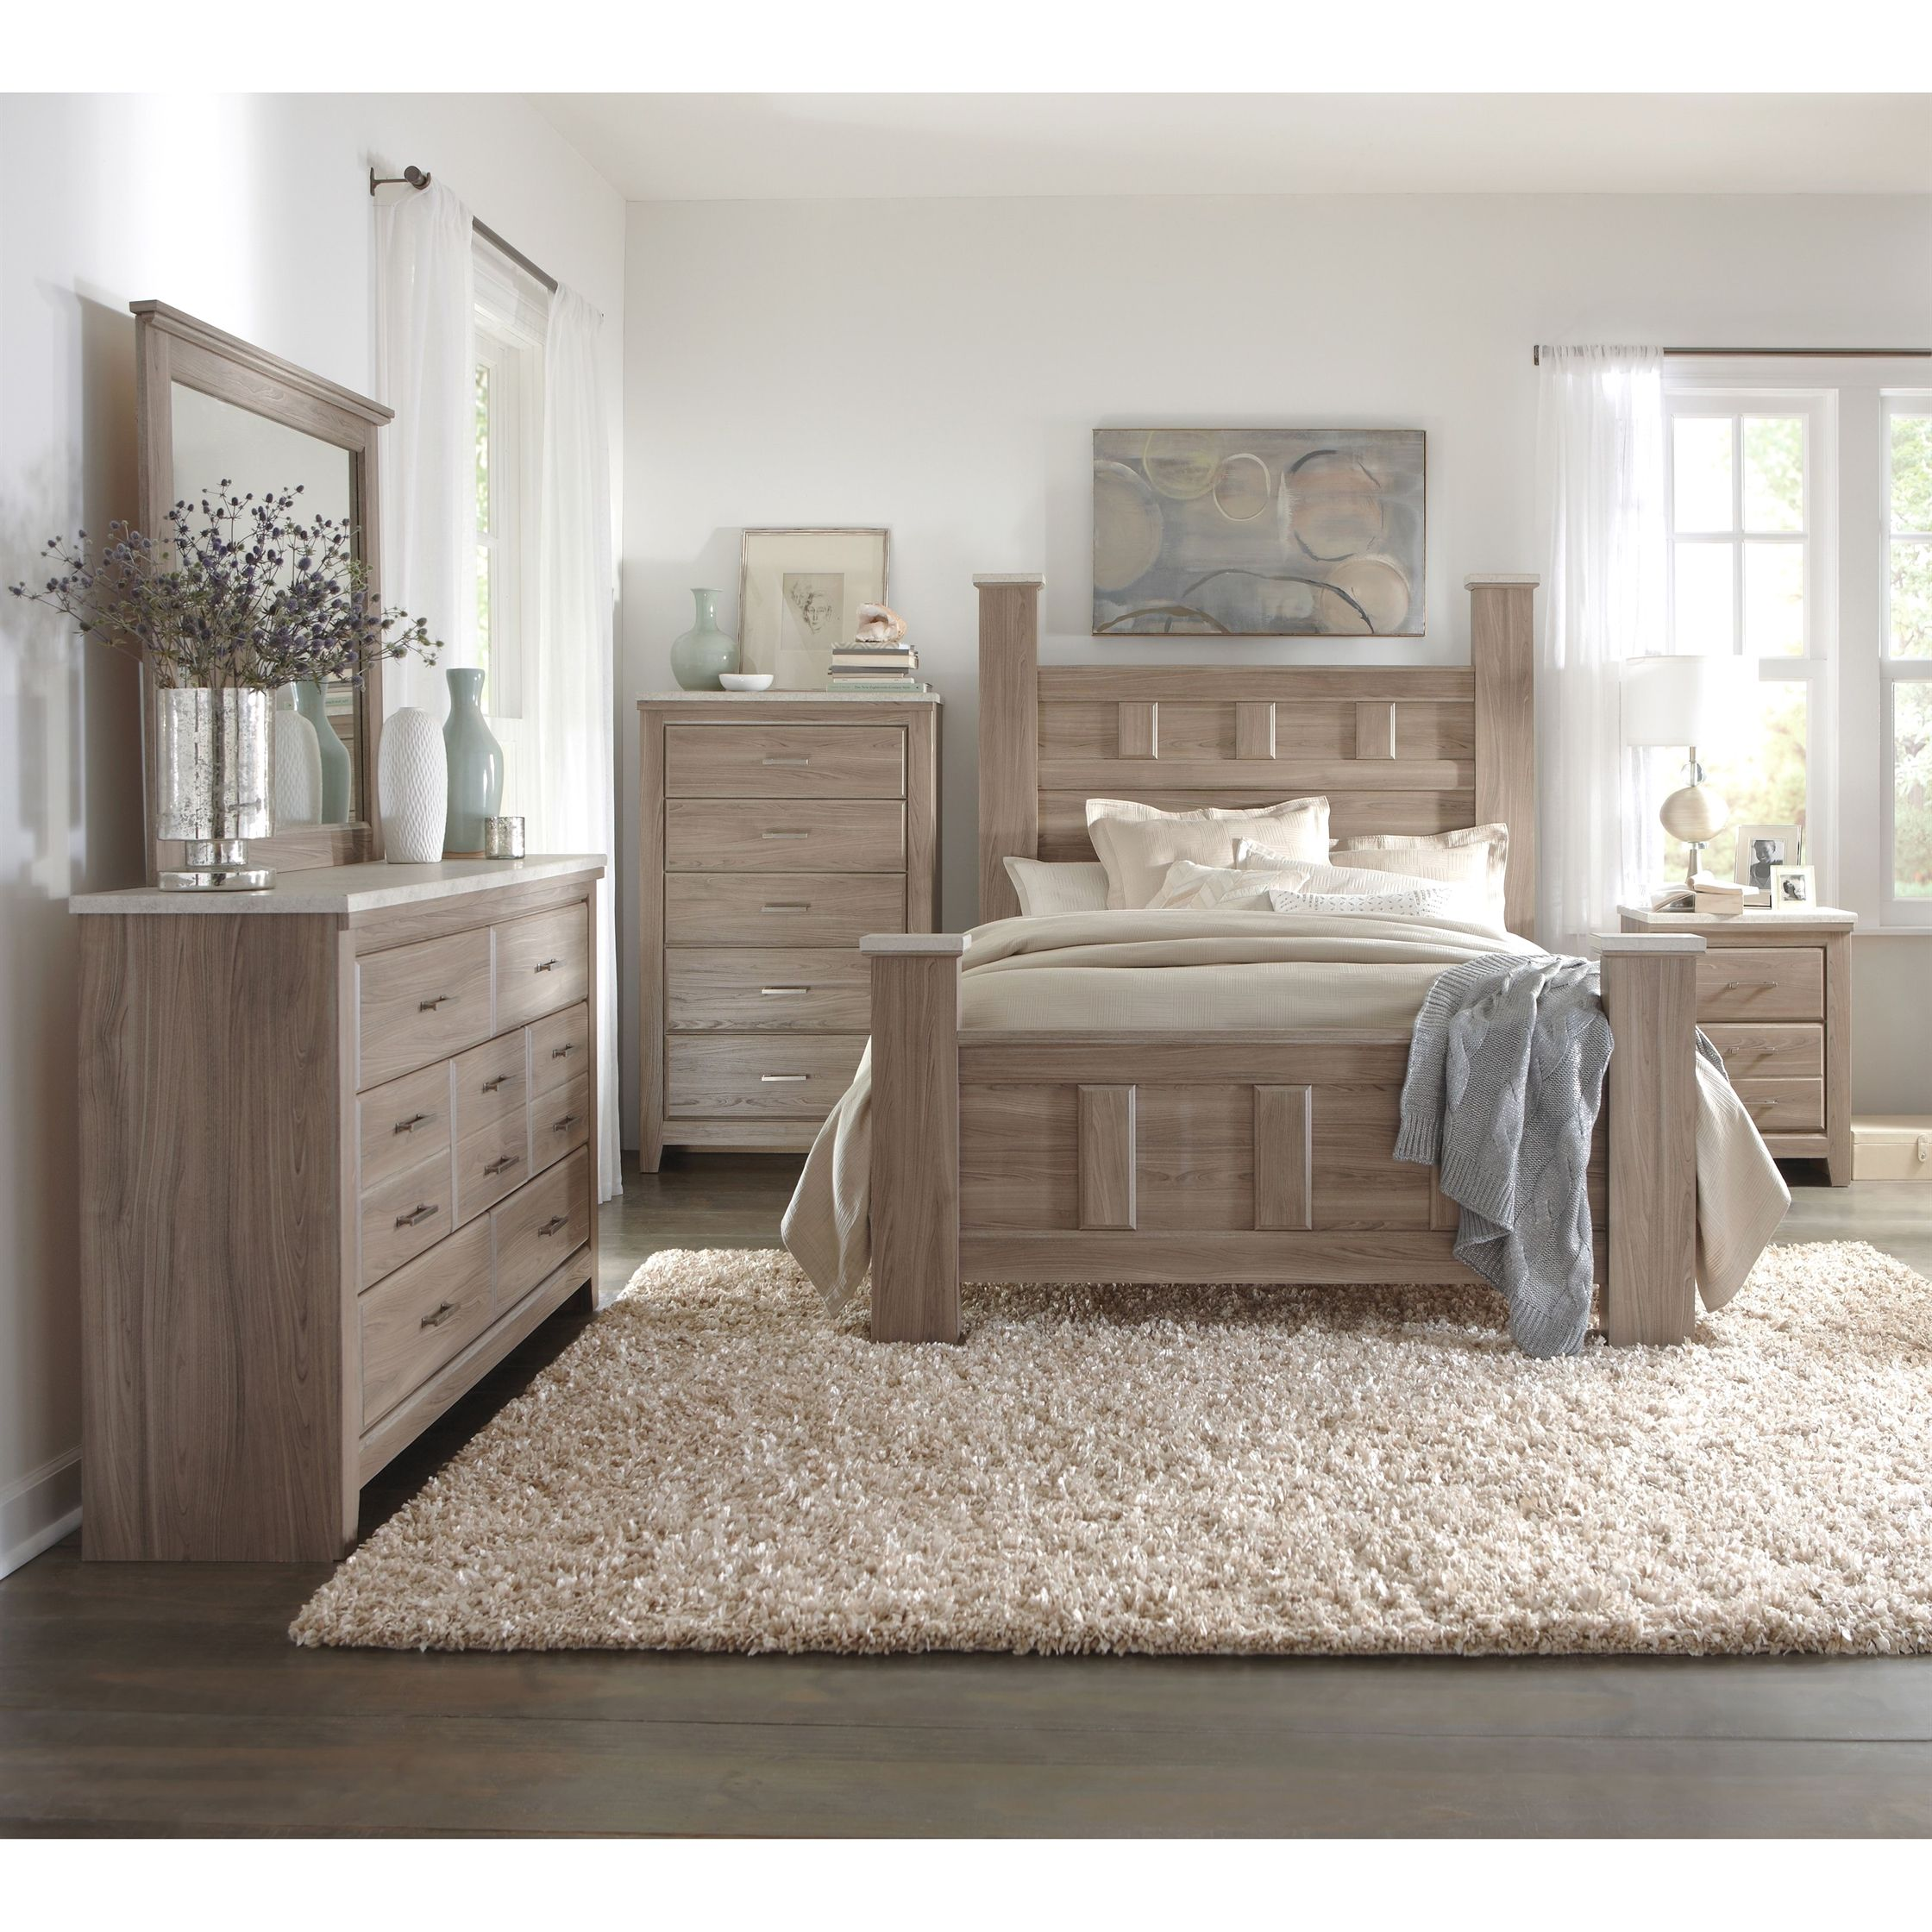 Art Van 6 Piece Queen Bedroom Set Overstock Shopping Big